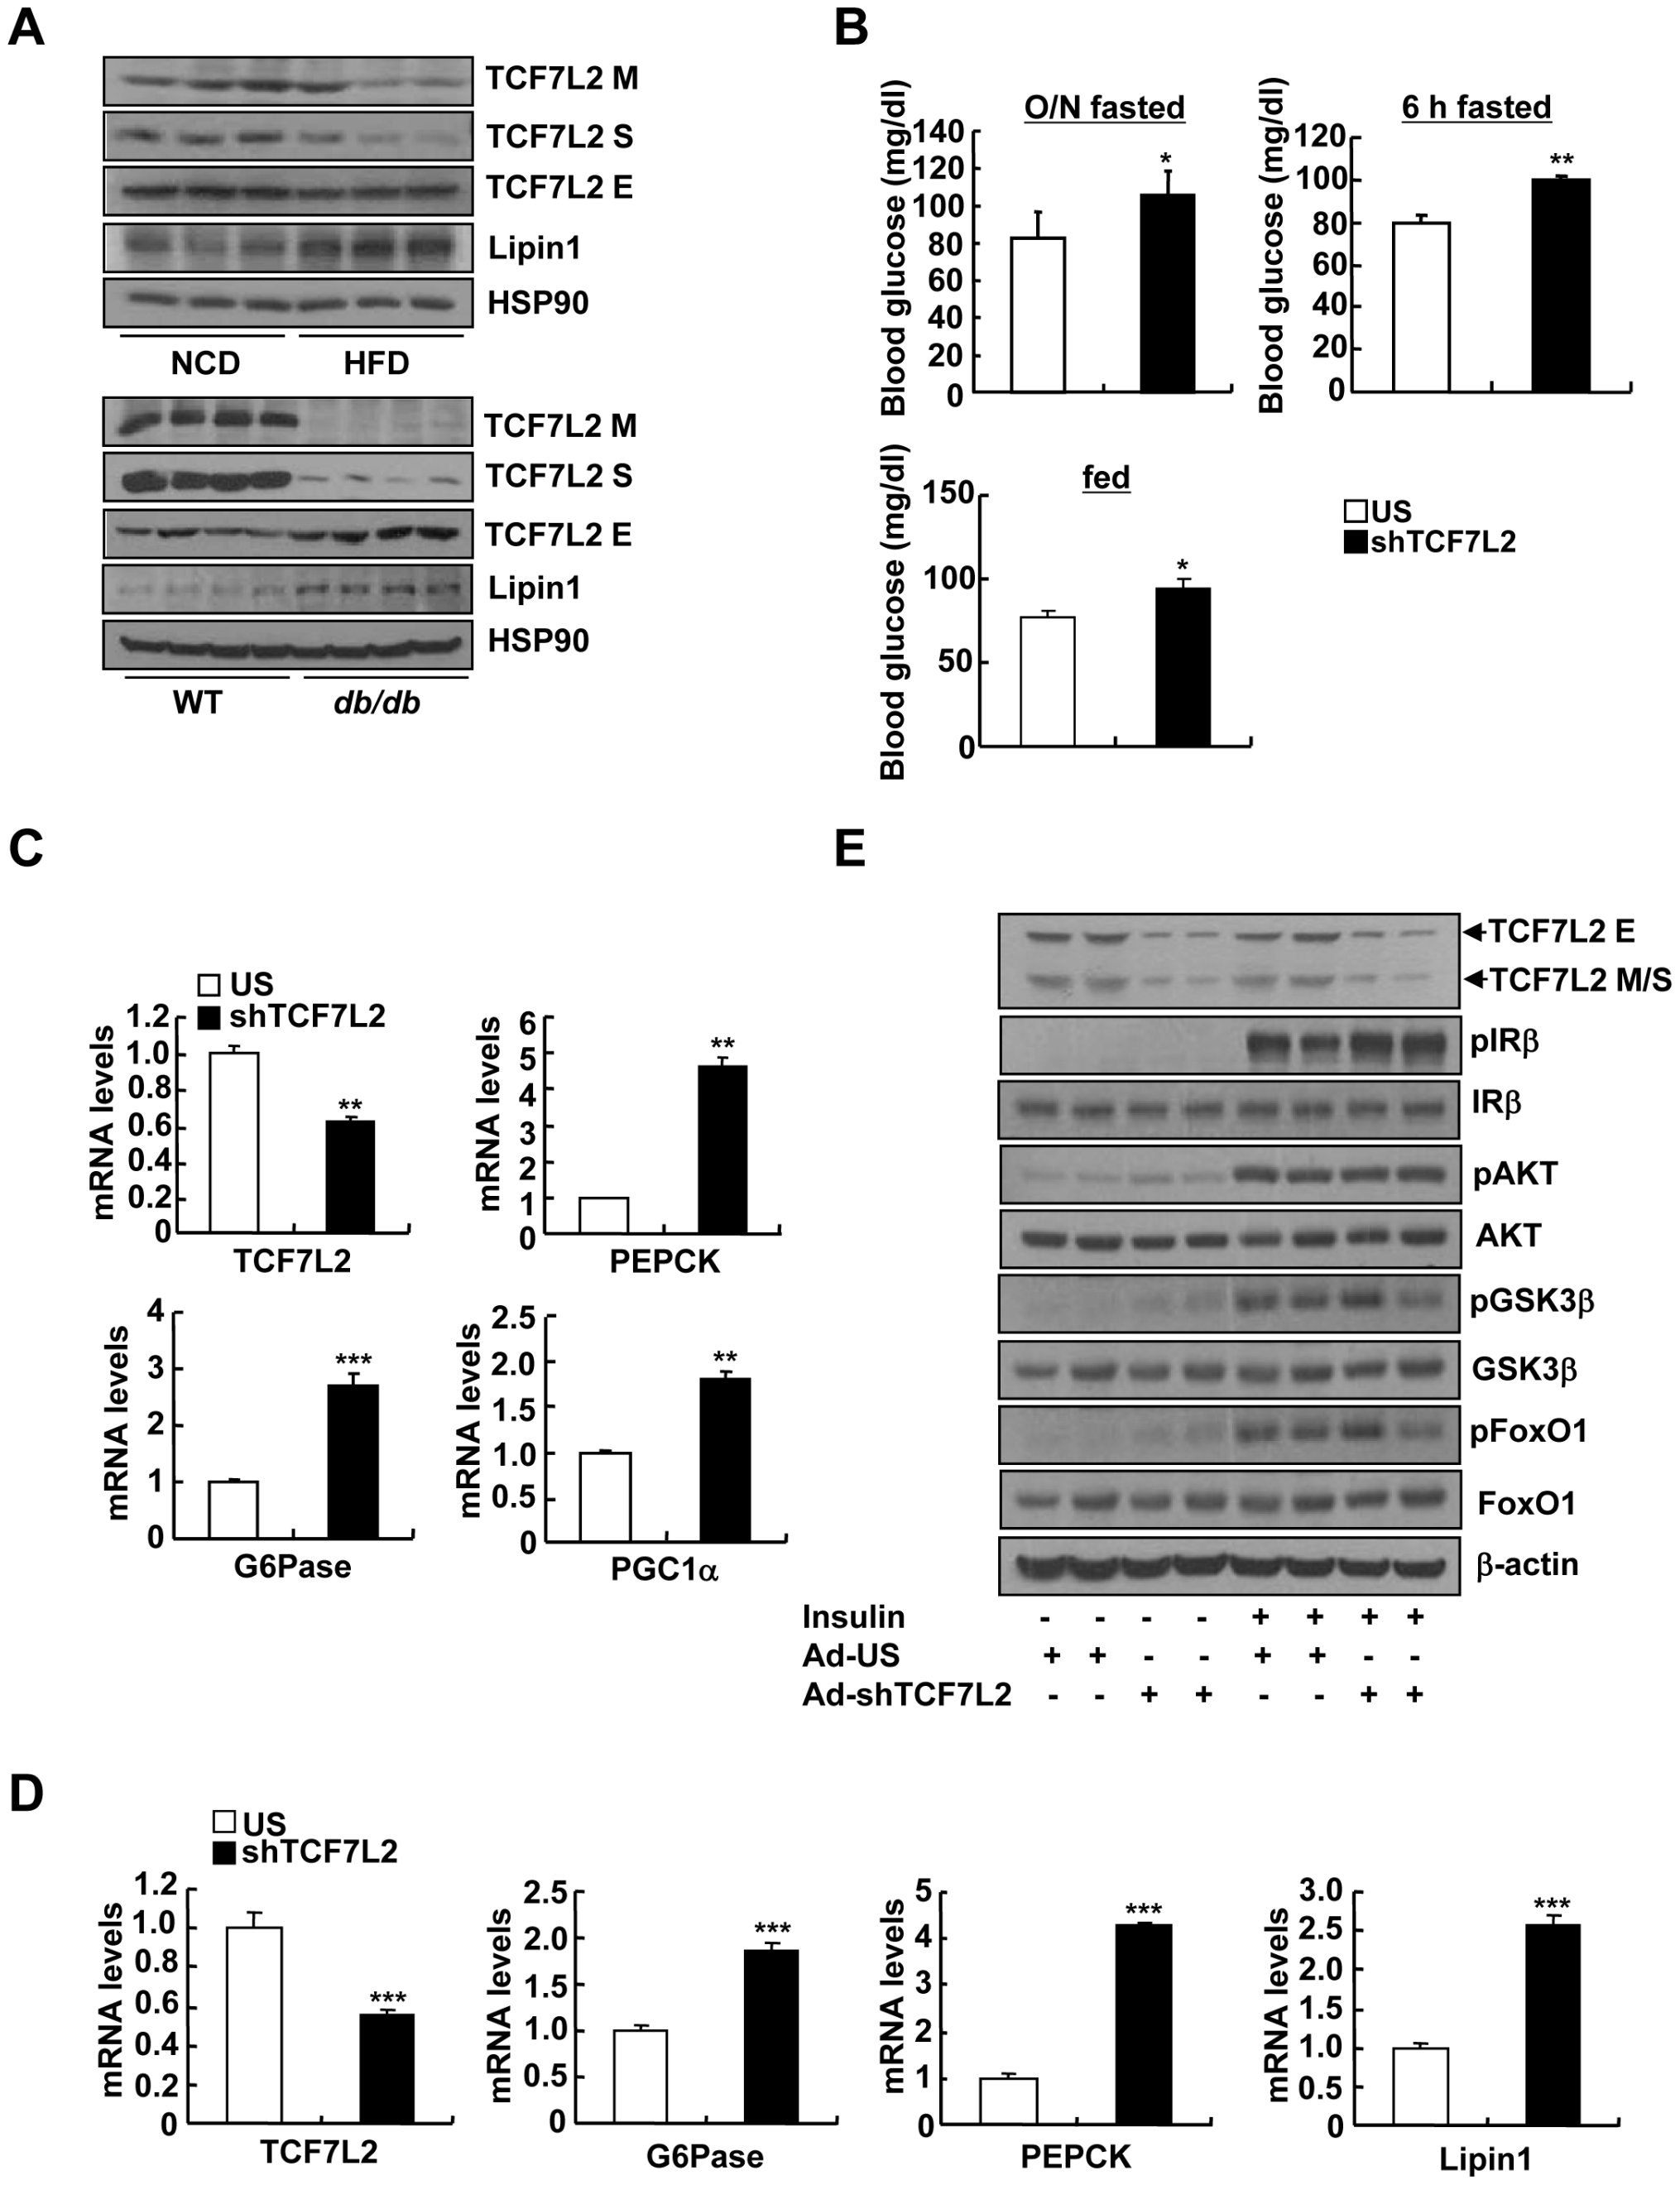 Knockdown of TCF7L2 promotes elevations in blood glucose levels in C57BL/6 mice.